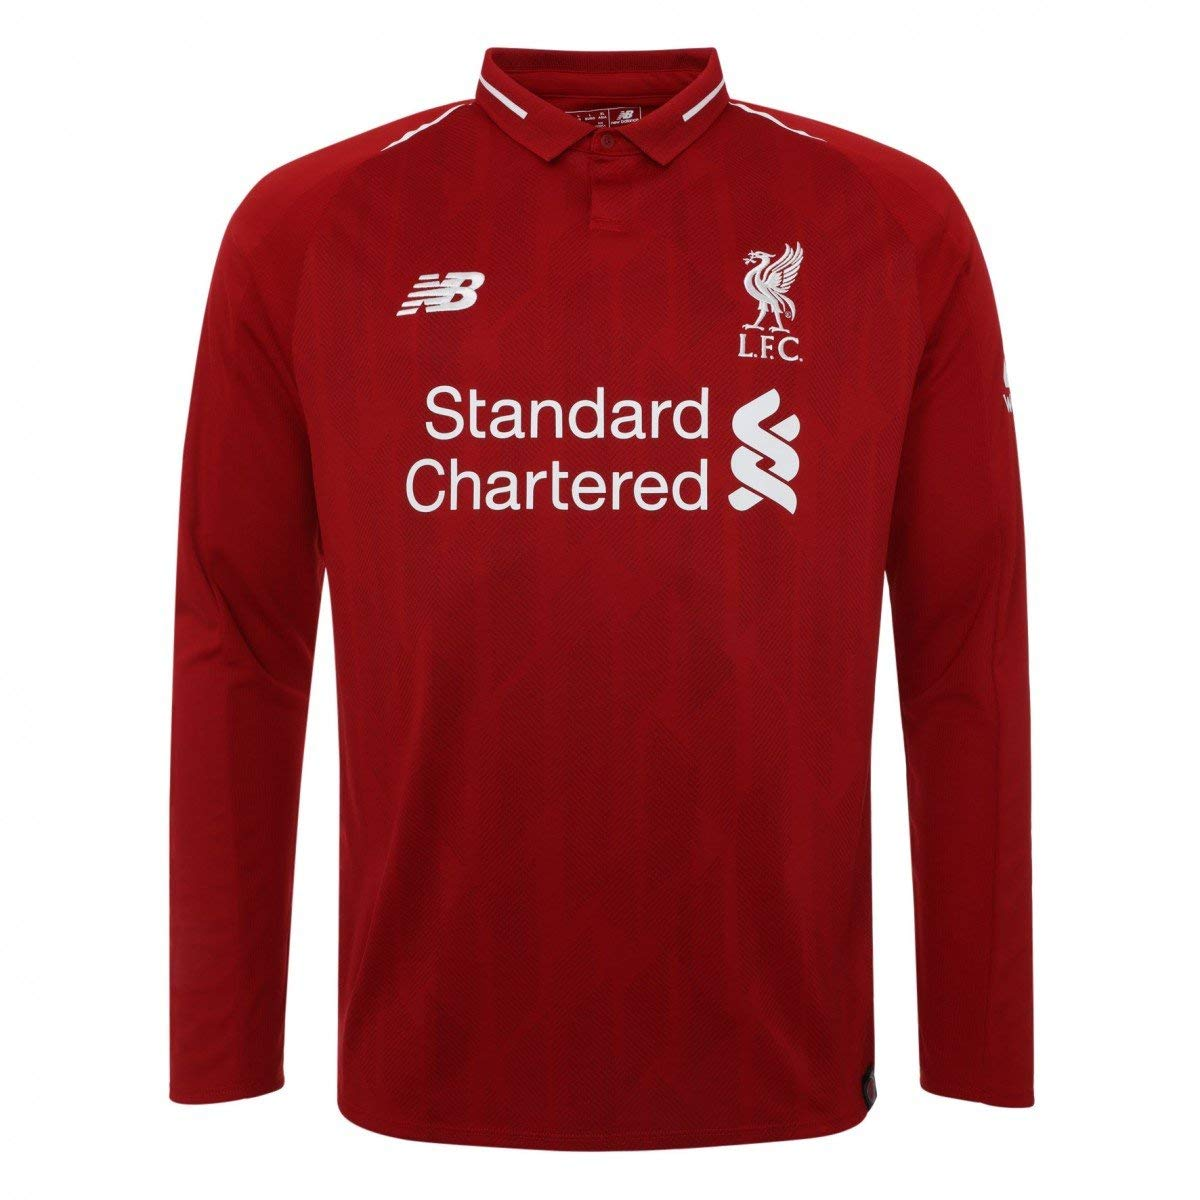 new arrival 431f8 9d48c 2018-2019 Liverpool Home Long Sleeve Shirt - Buy best